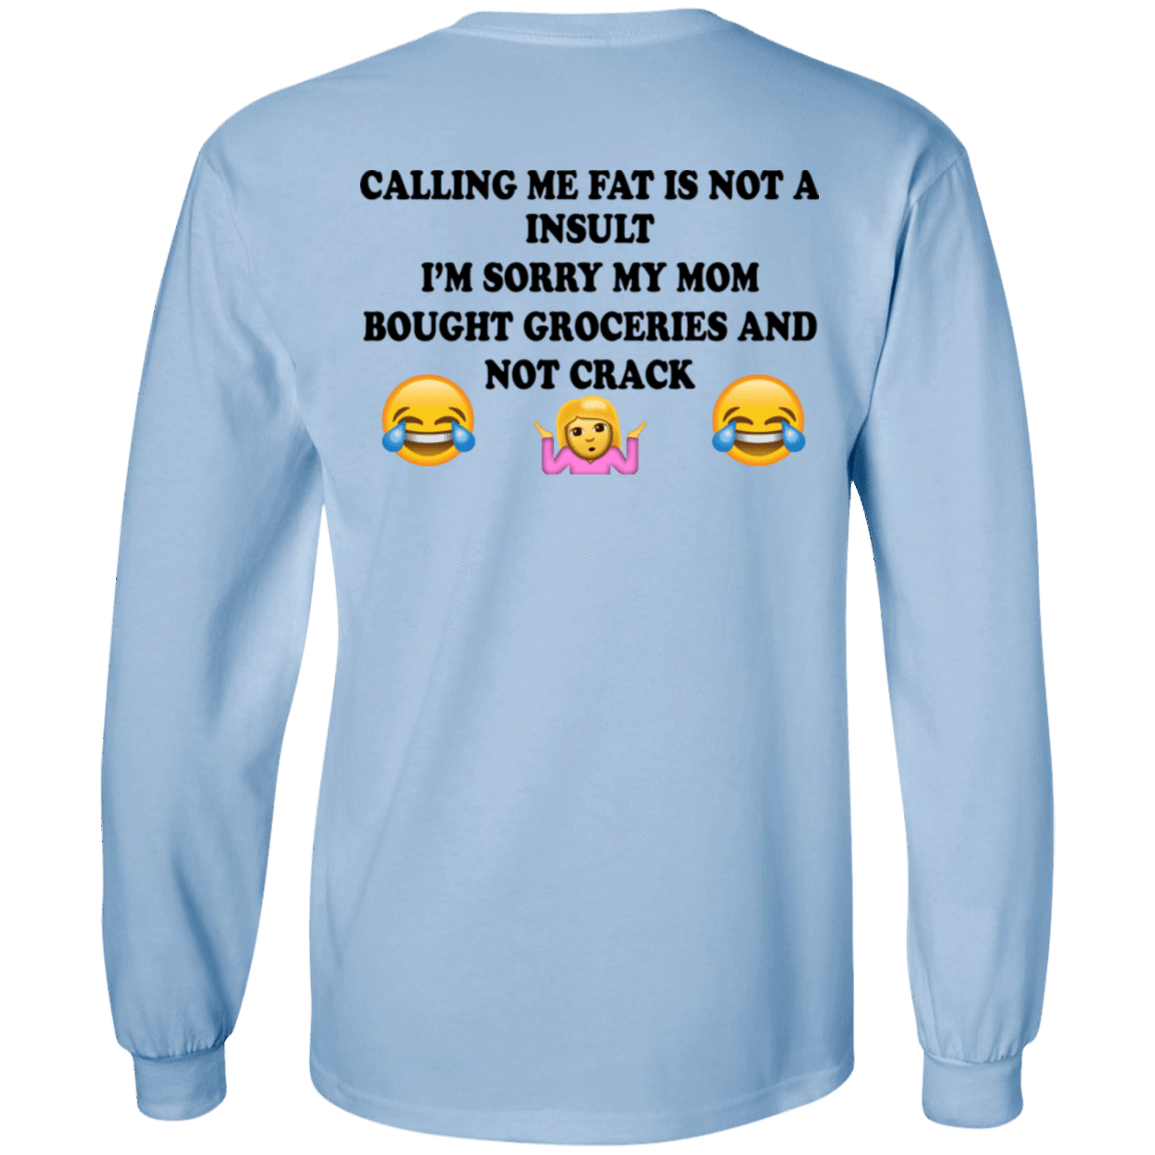 Calling Me Fat Is Not A Insult I'm Sorry My Mom Bought Groceries And Not Crack T-Shirts, Hoodies, Tank 30-2110-79712839-10748 - Tee Ript